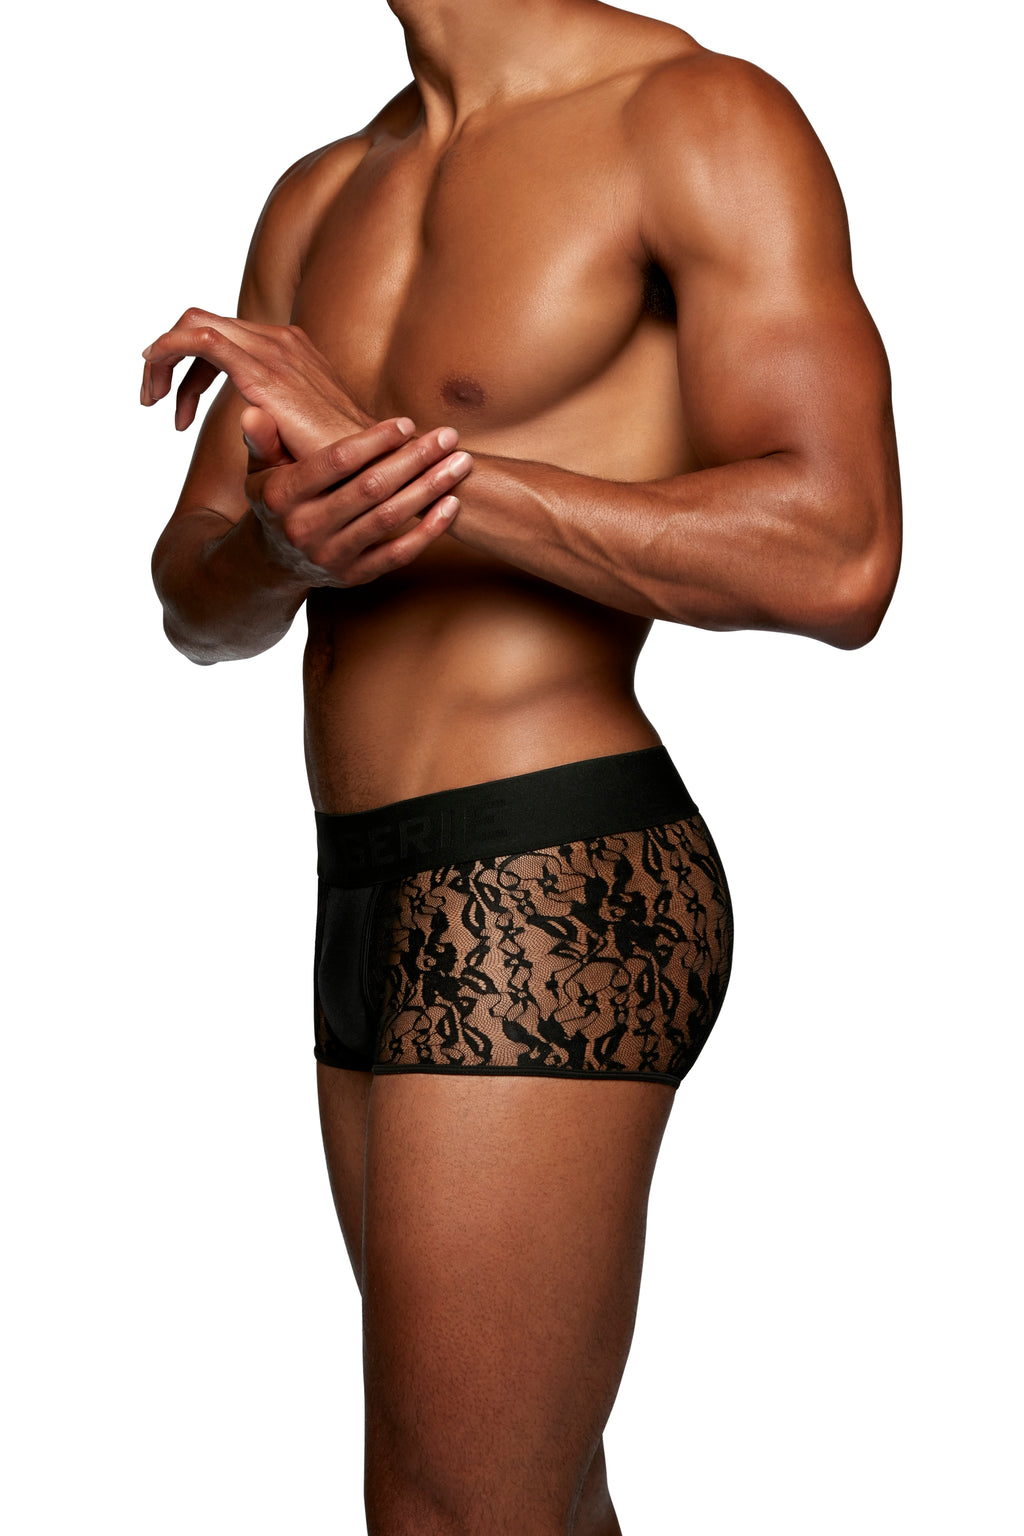 LOW RISE TRUNK in LACE - MENAGERIE Intimates MENS Lingerie